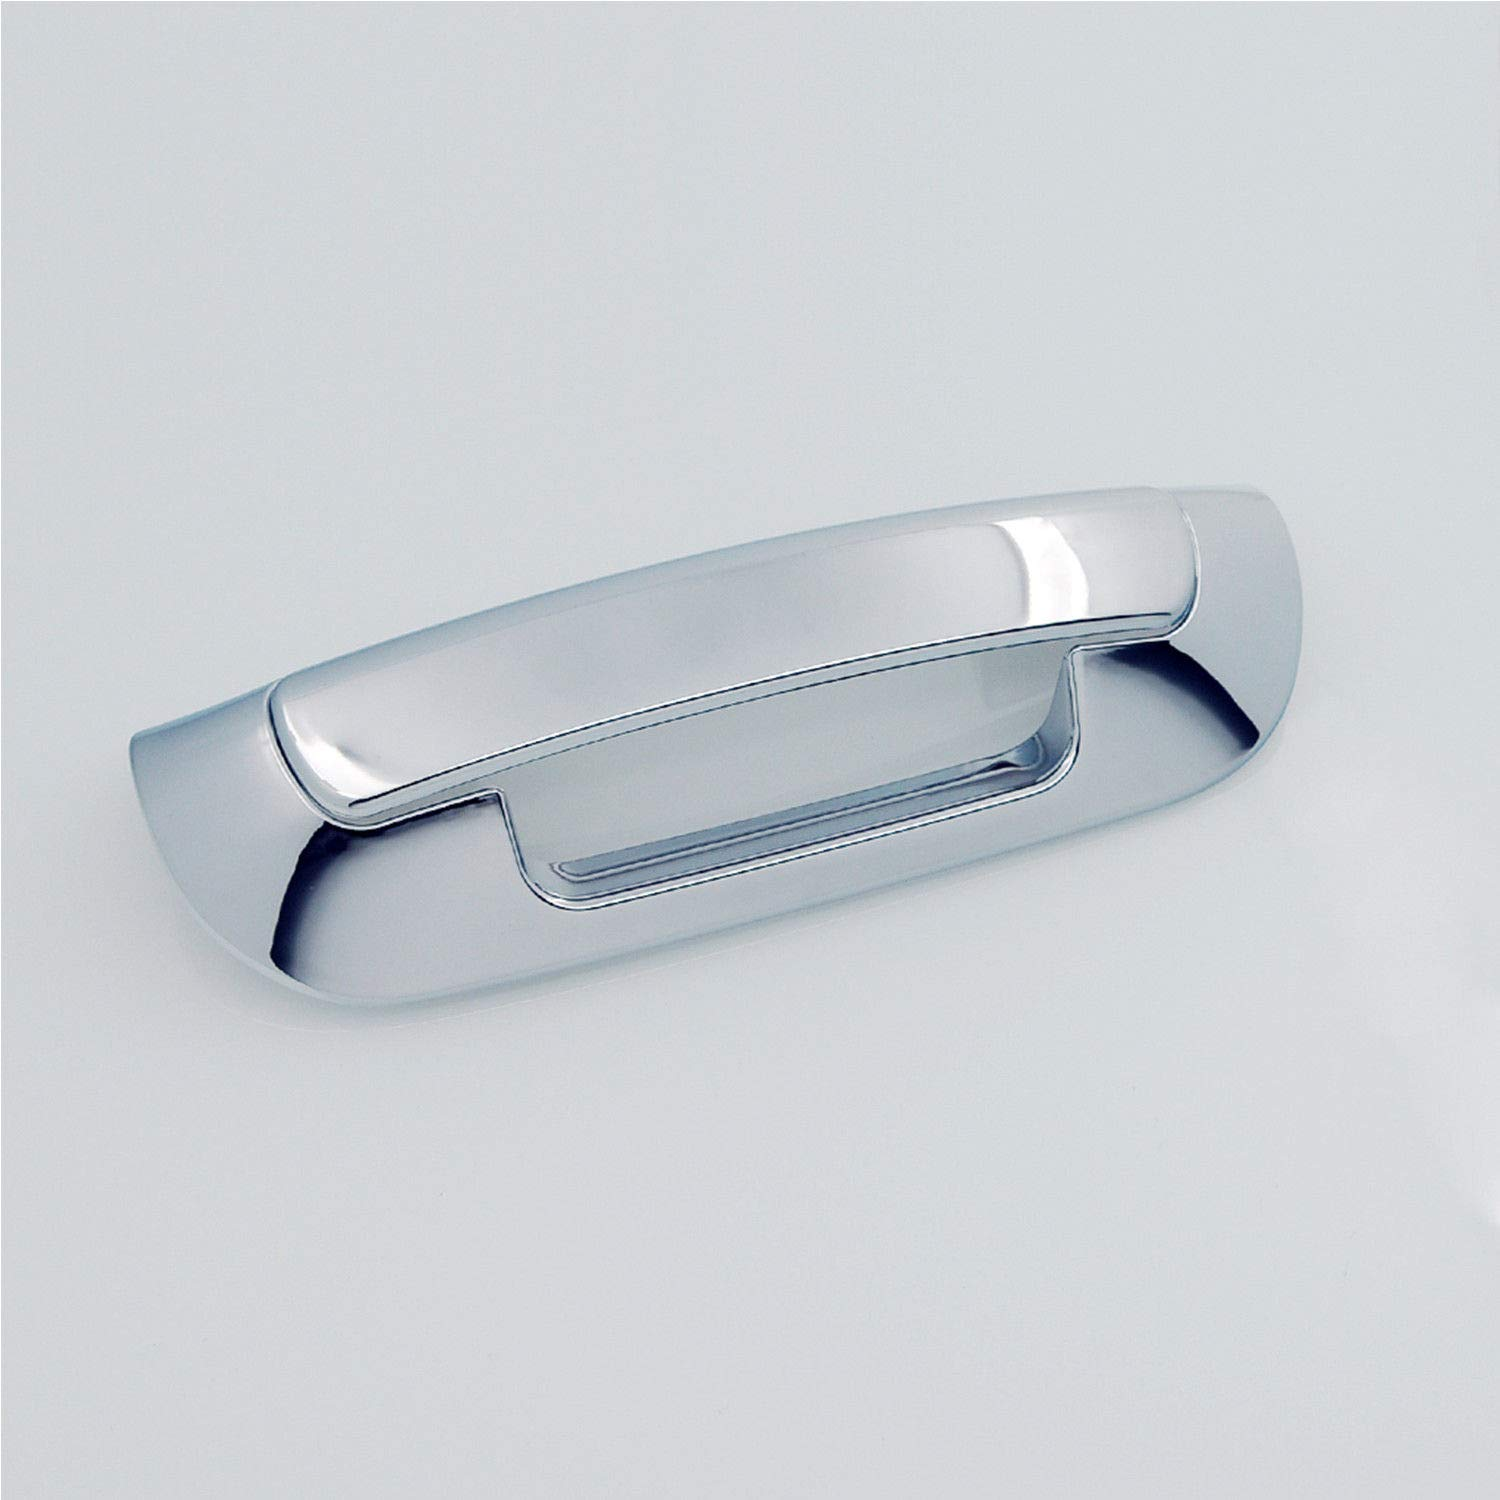 EAG Tailgate Handle Cover Triple Chrome ABS Plated for 99-04 Jeep Grand Cherokee